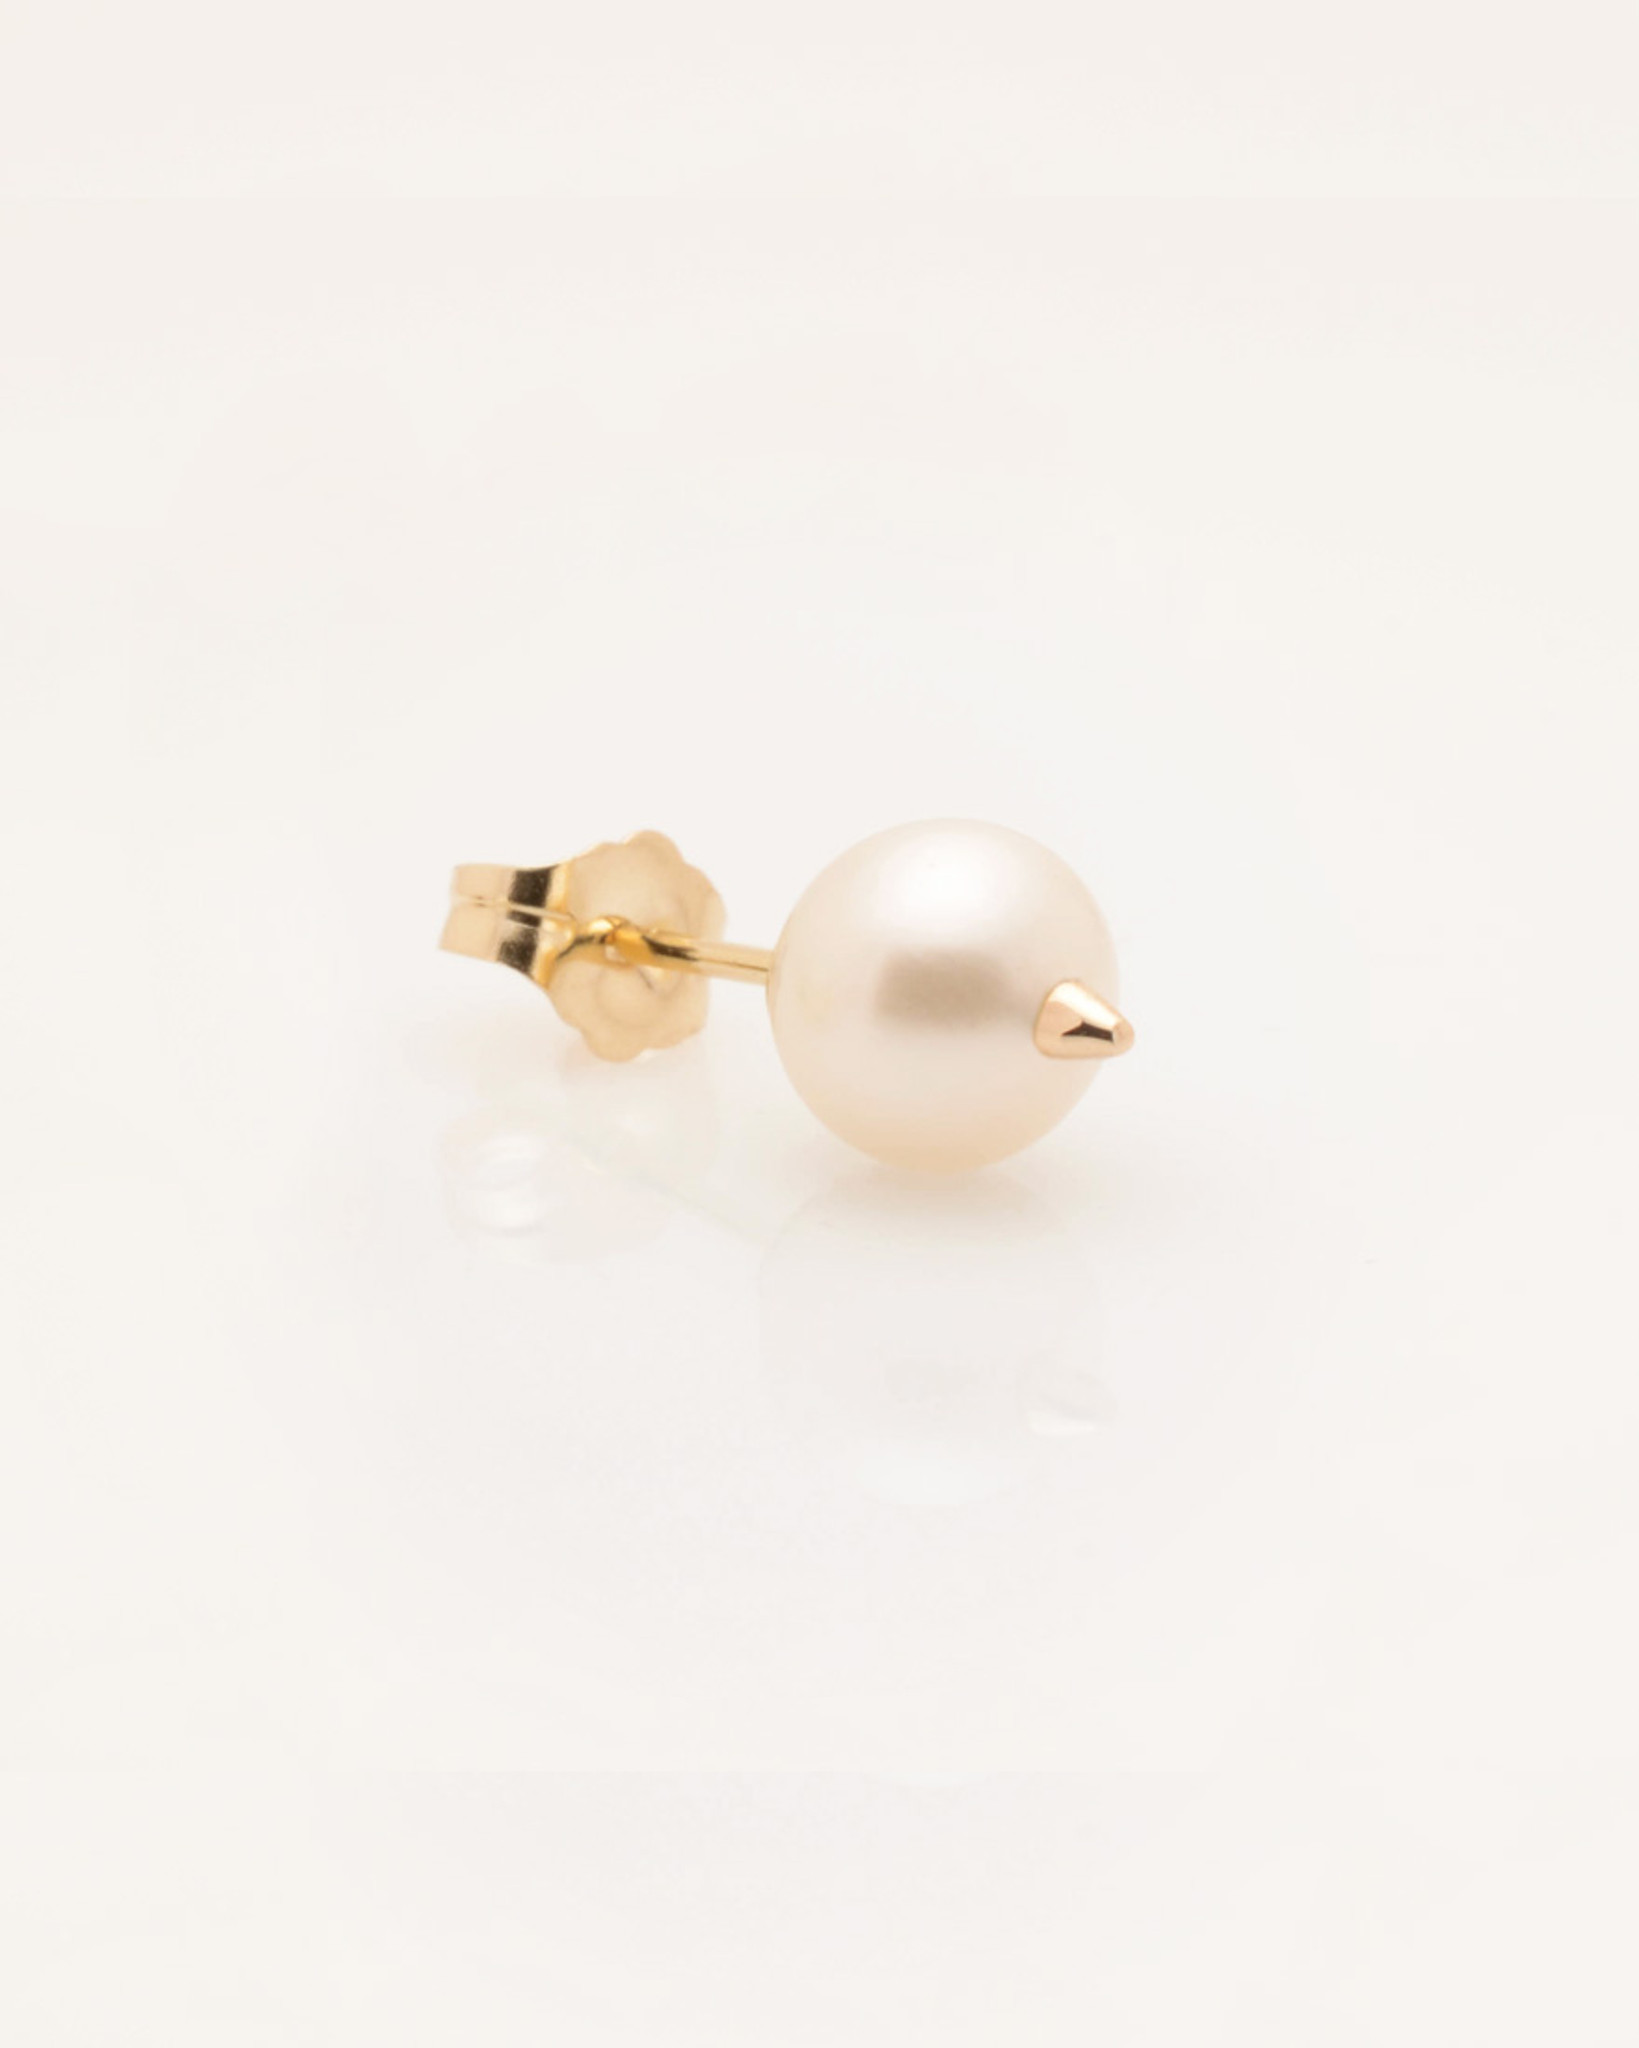 Cultured Freshwater Pearl Earring with 14k Gold Spike and Post by Jewelry Designer Nektar De Stagni